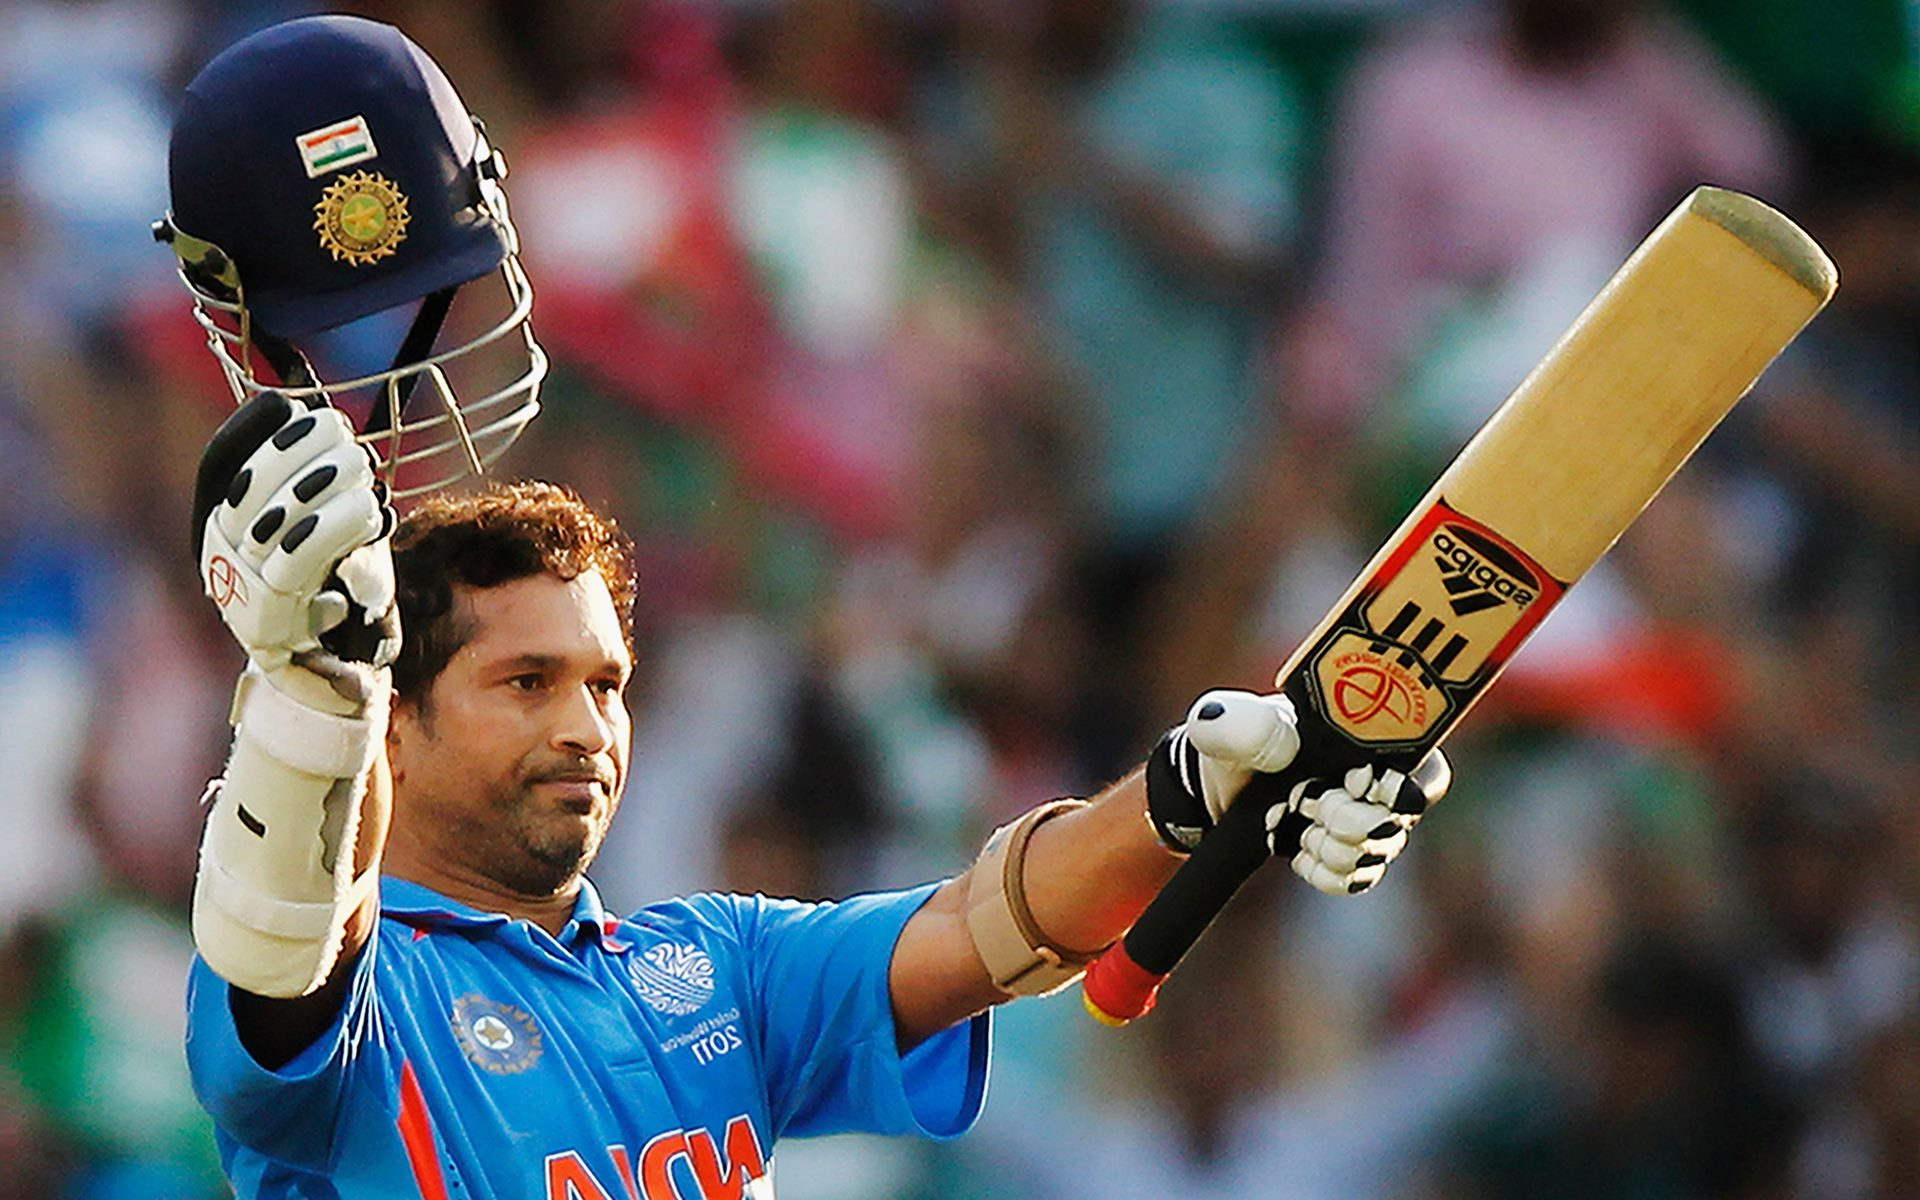 sachin tendulkar best century in one day match still background free download mobile pictures hd